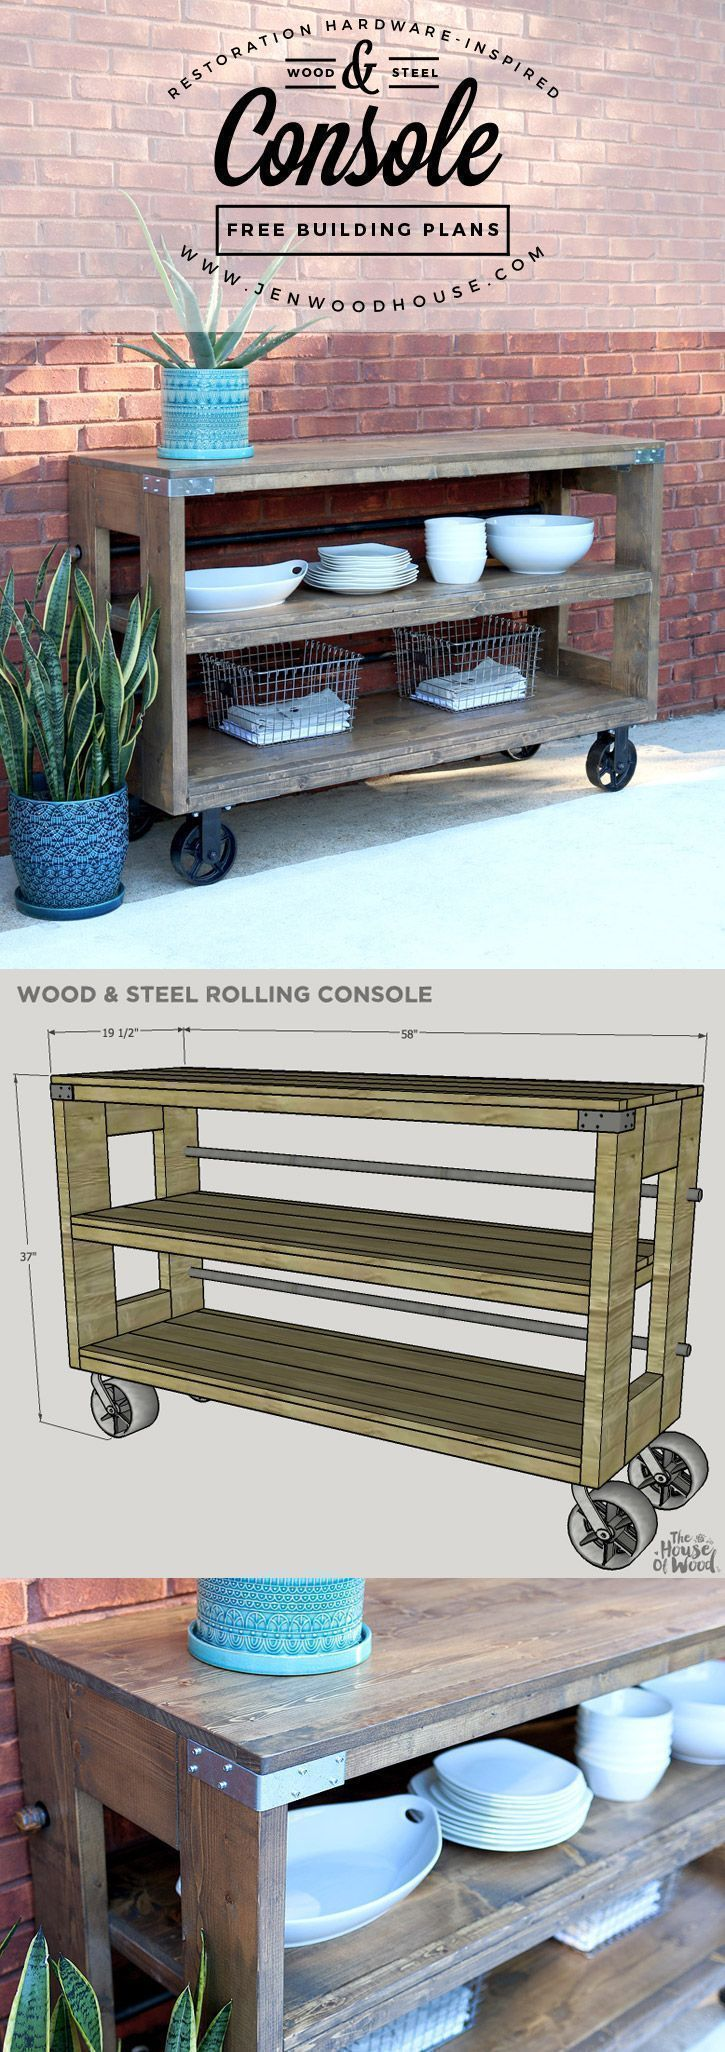 diy furniture refinishing projects. best 25 restoration ideas on pinterest restoring furniture stripping wood and decorating teen bedrooms diy refinishing projects